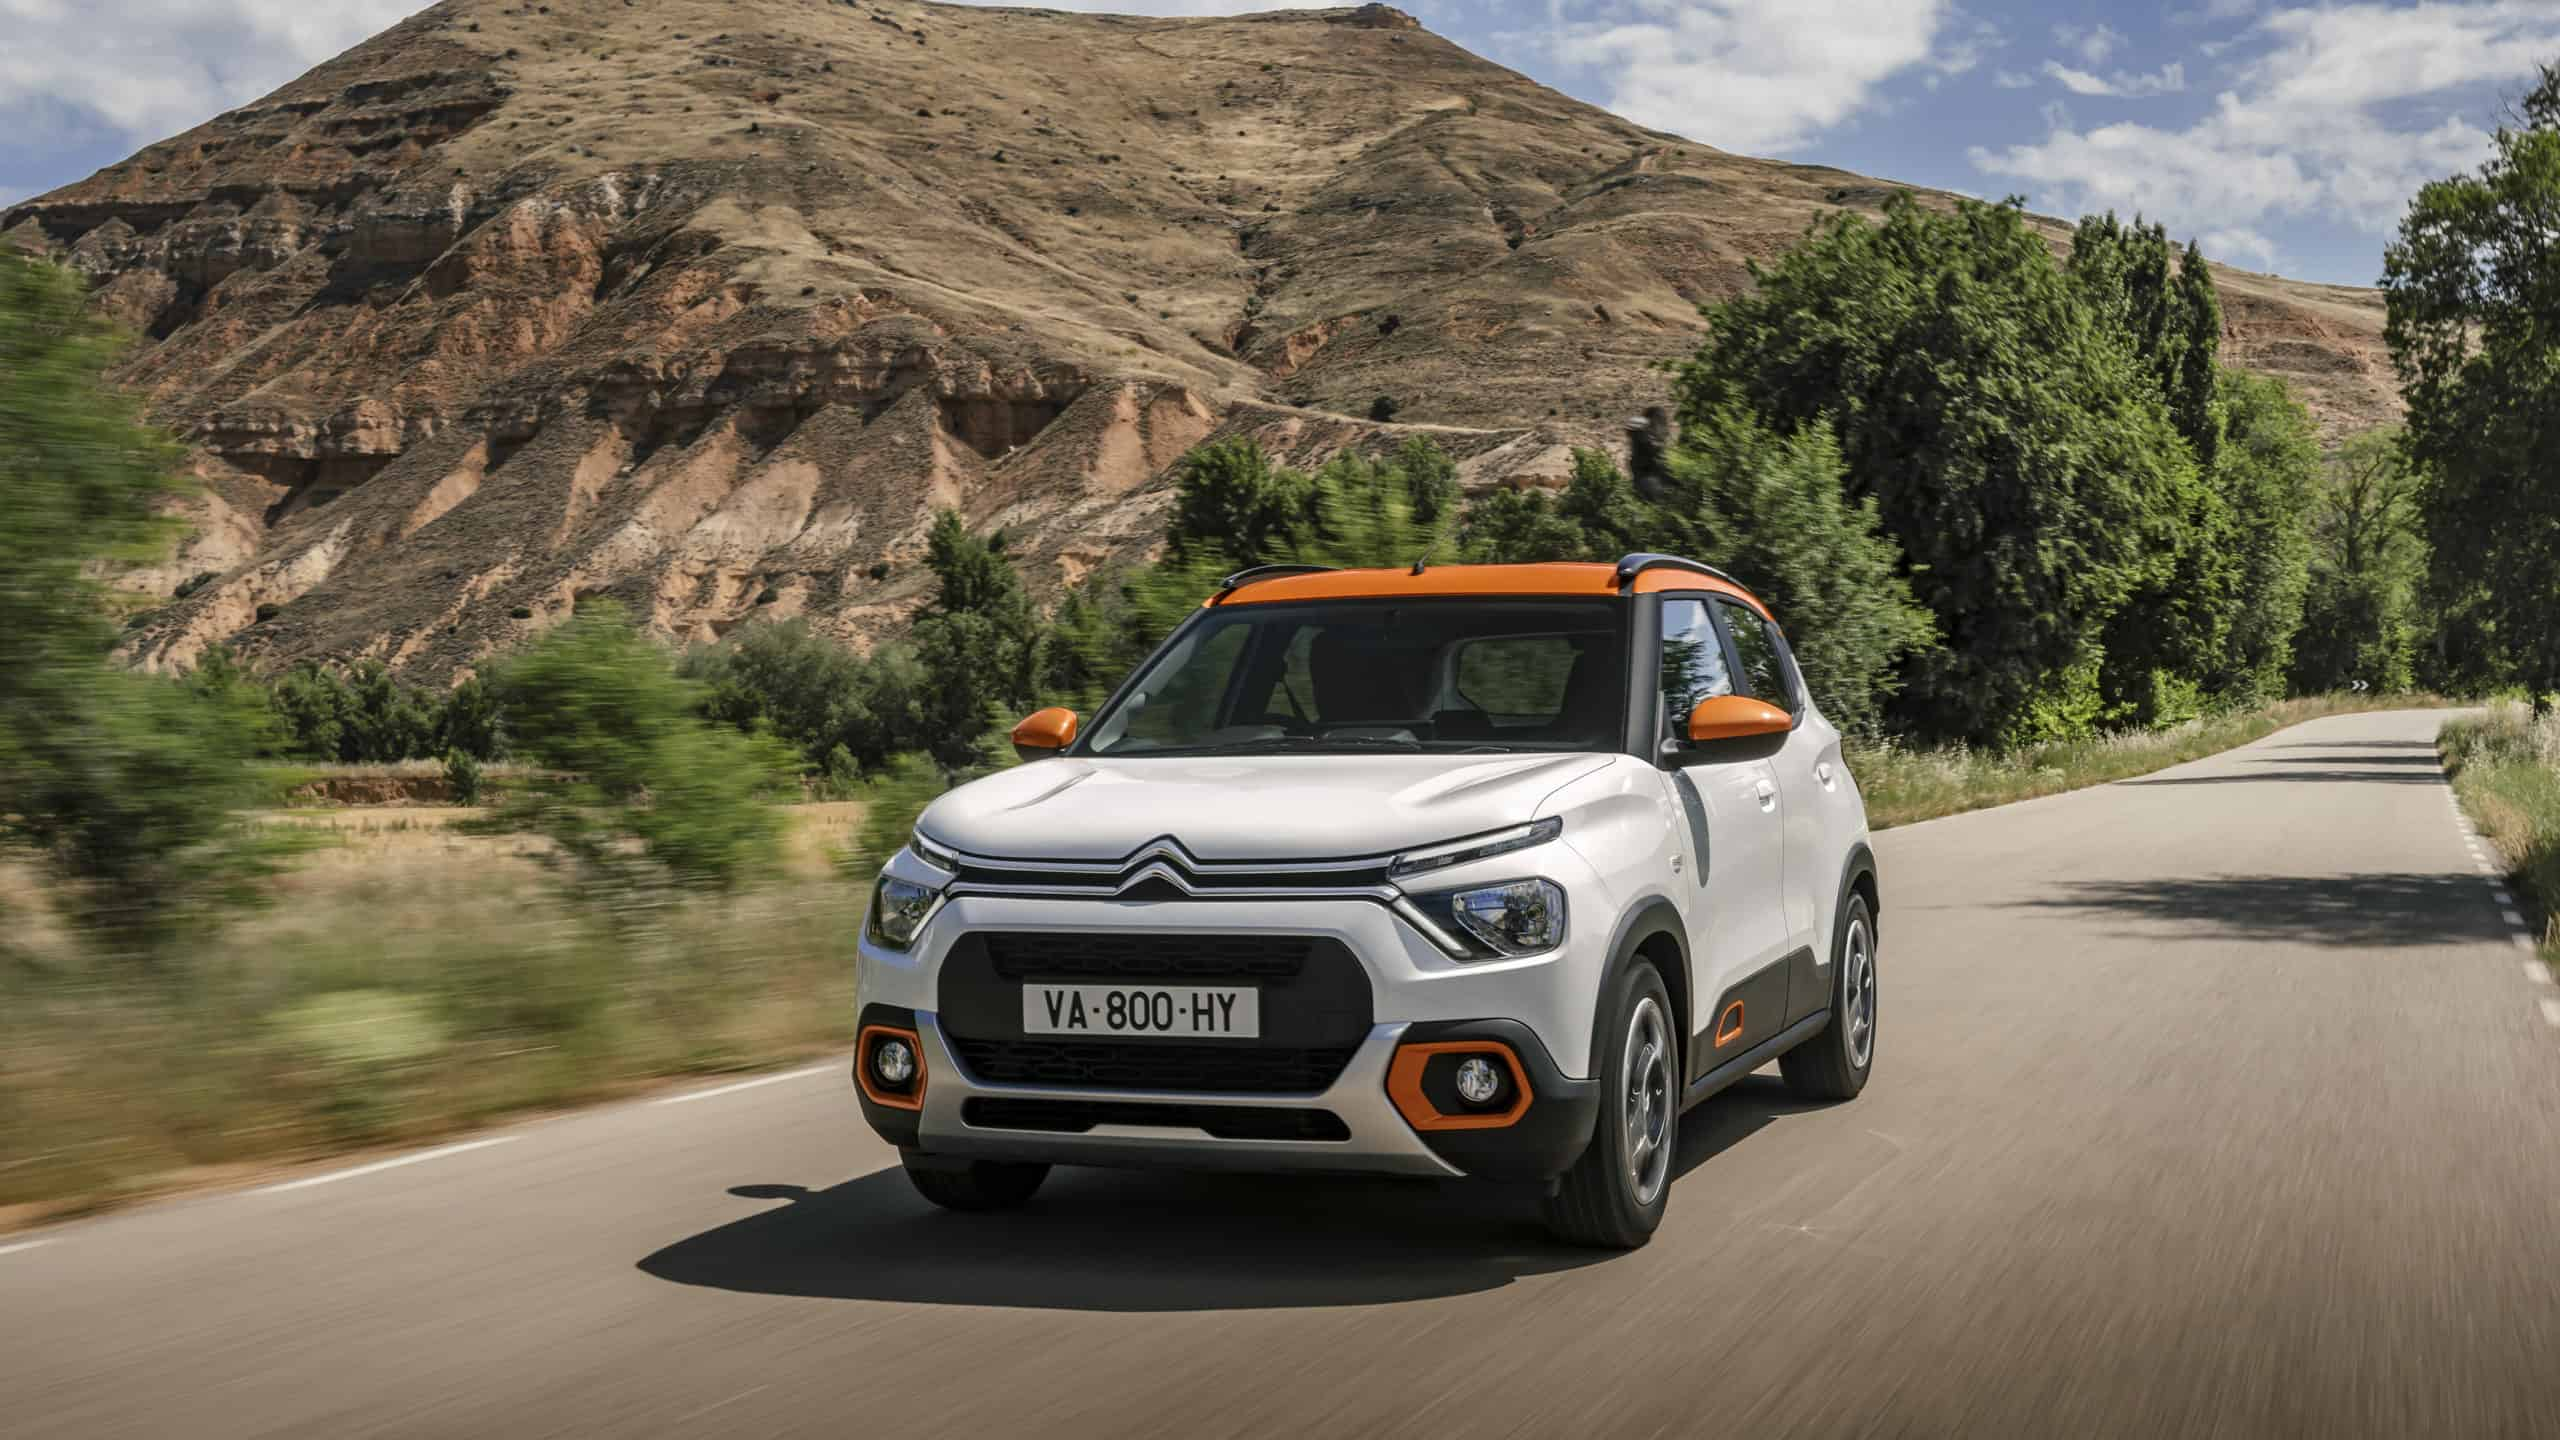 2021 Citroen C3 Unveiled - First Made for India Citroen